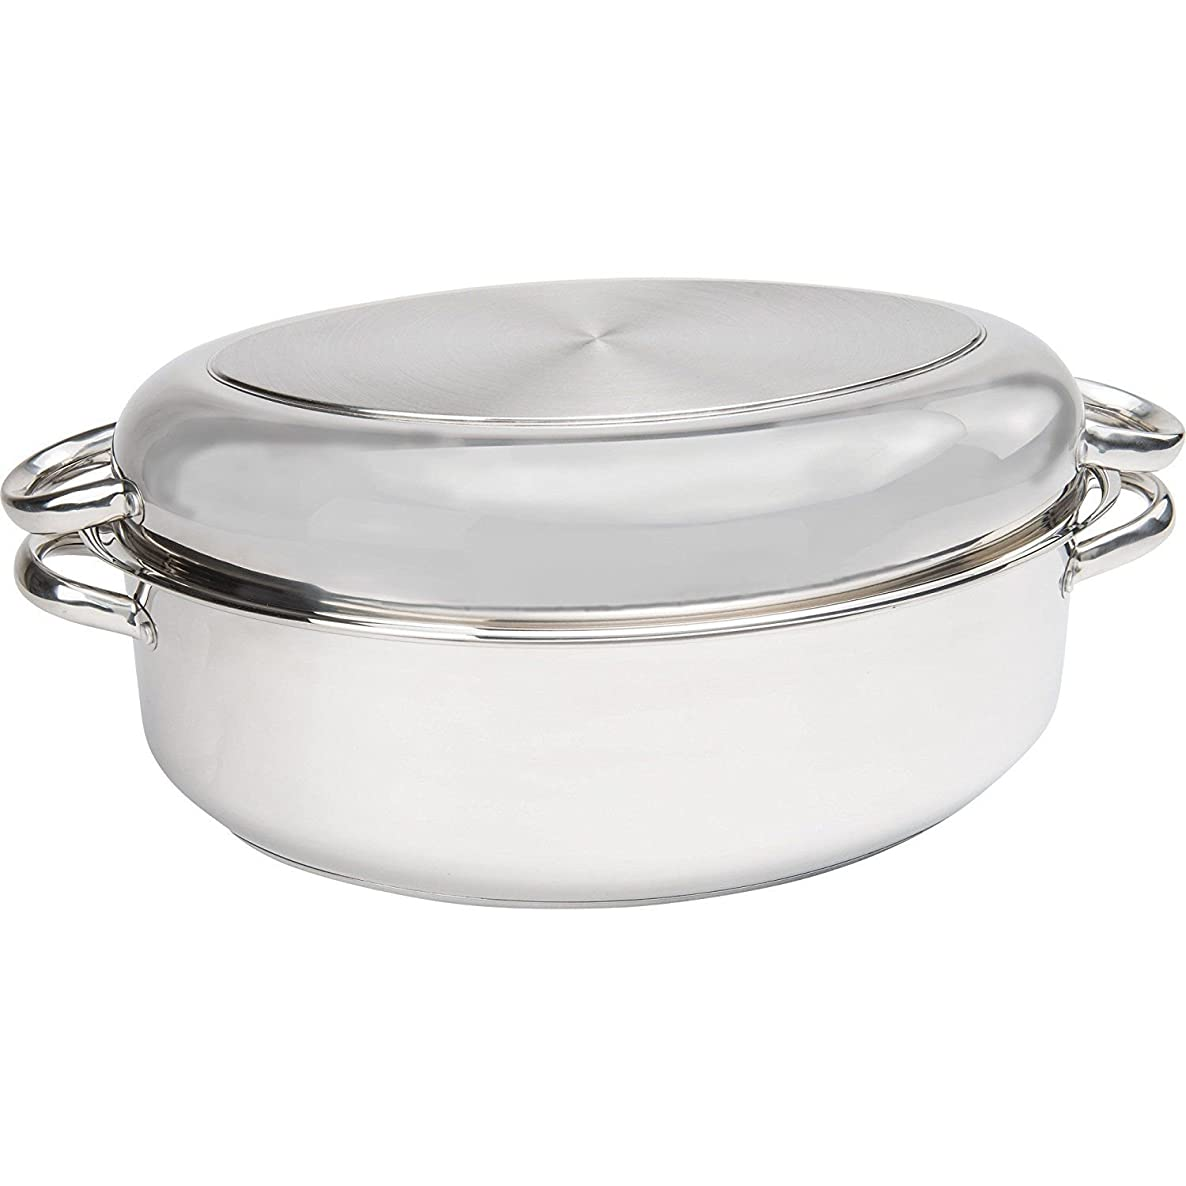 Precise-Heat Multi-Use Baking and Roasting Pan with Easy Lift Wire Rack, Stainless Steel gdum9675954954